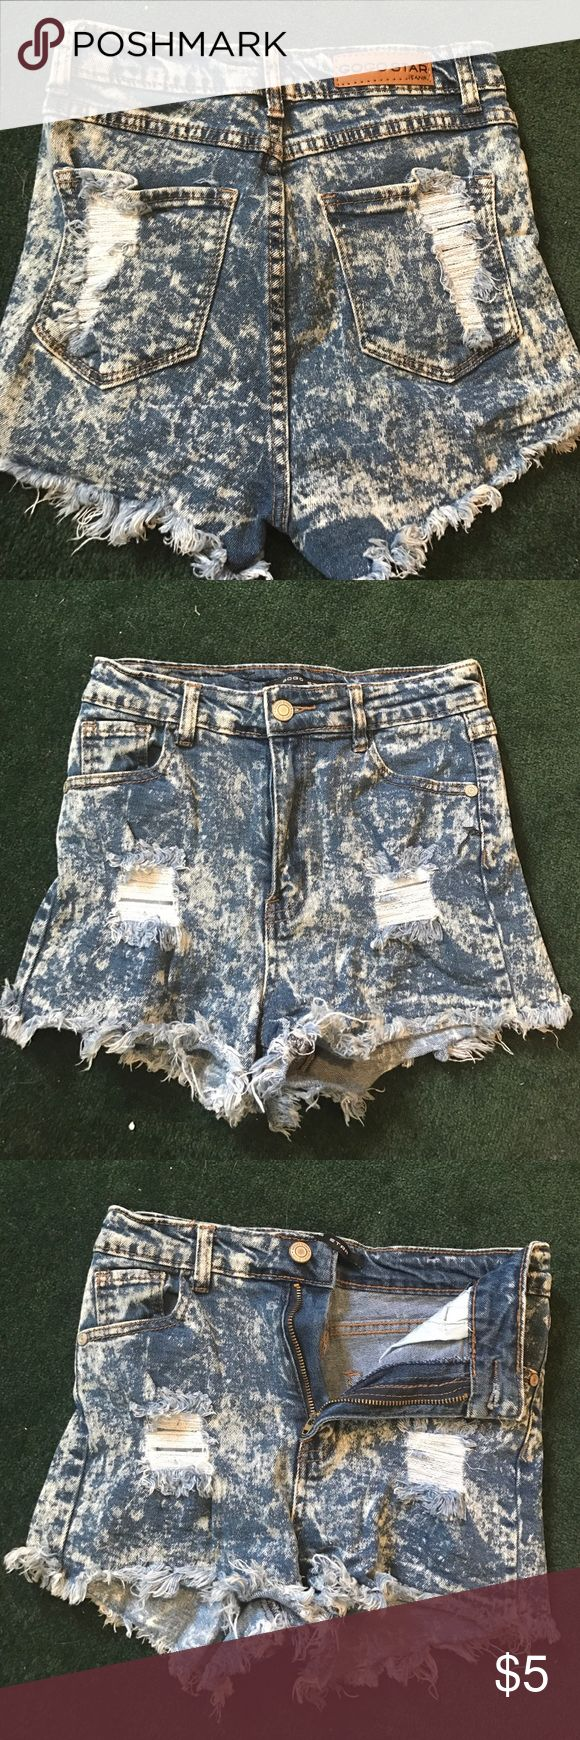 High wasted acid wash shorts High wasted, acid wash, short shorts from Charolette Russe! Charlotte Russe Shorts Jean Shorts